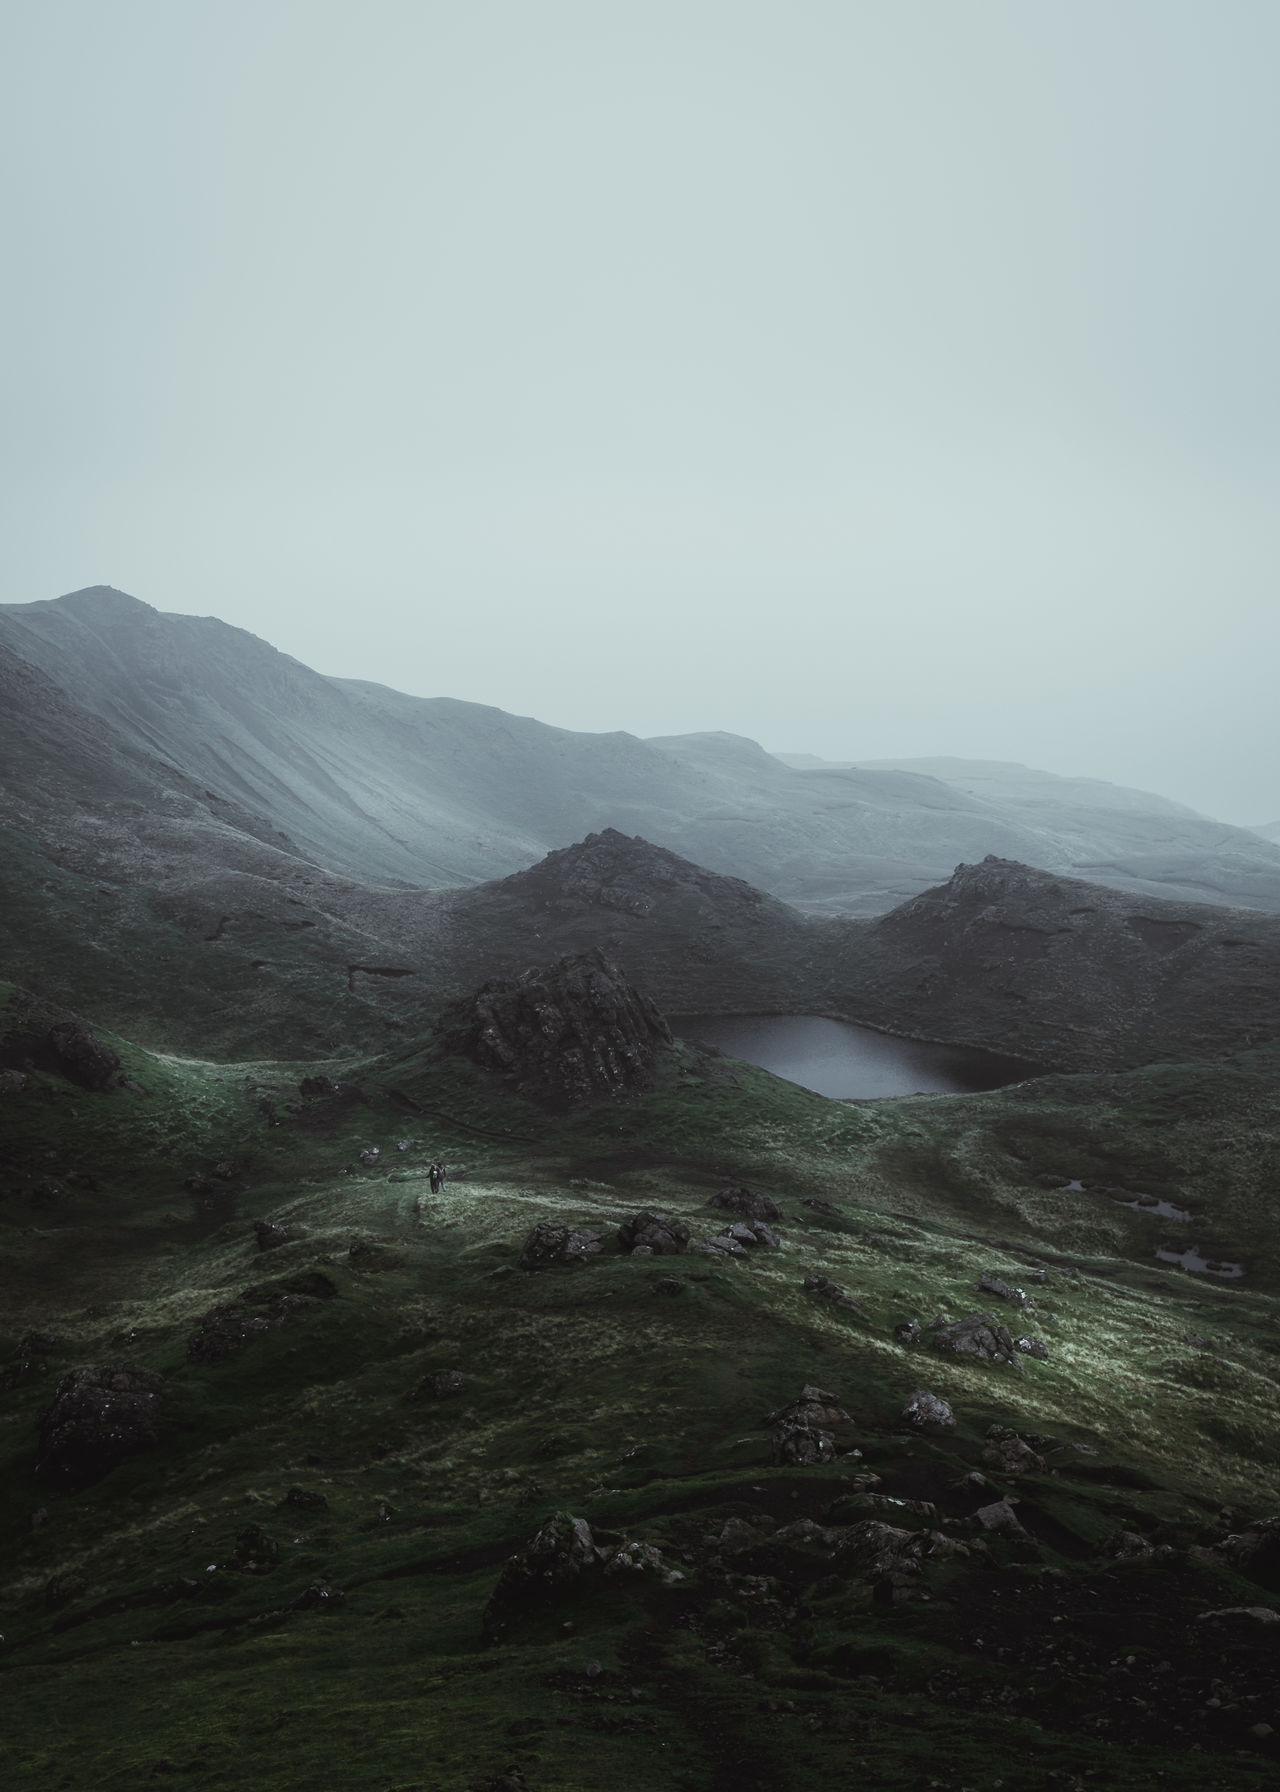 Never stop exploring. Location: Isle Of Skye, Scotland Equipment: Fujifilm X-T1 + XF18-55 Atmosphere Beauty In Nature Day Green Hiker Hill Isle Of Skye Lake Landscape Mood Moody Mountain Nature No People Old Man Of Storr Outdoor Outdoors Scenics Schottland Scotland Sky Skye Slope Tranquil Scene Wanderlust